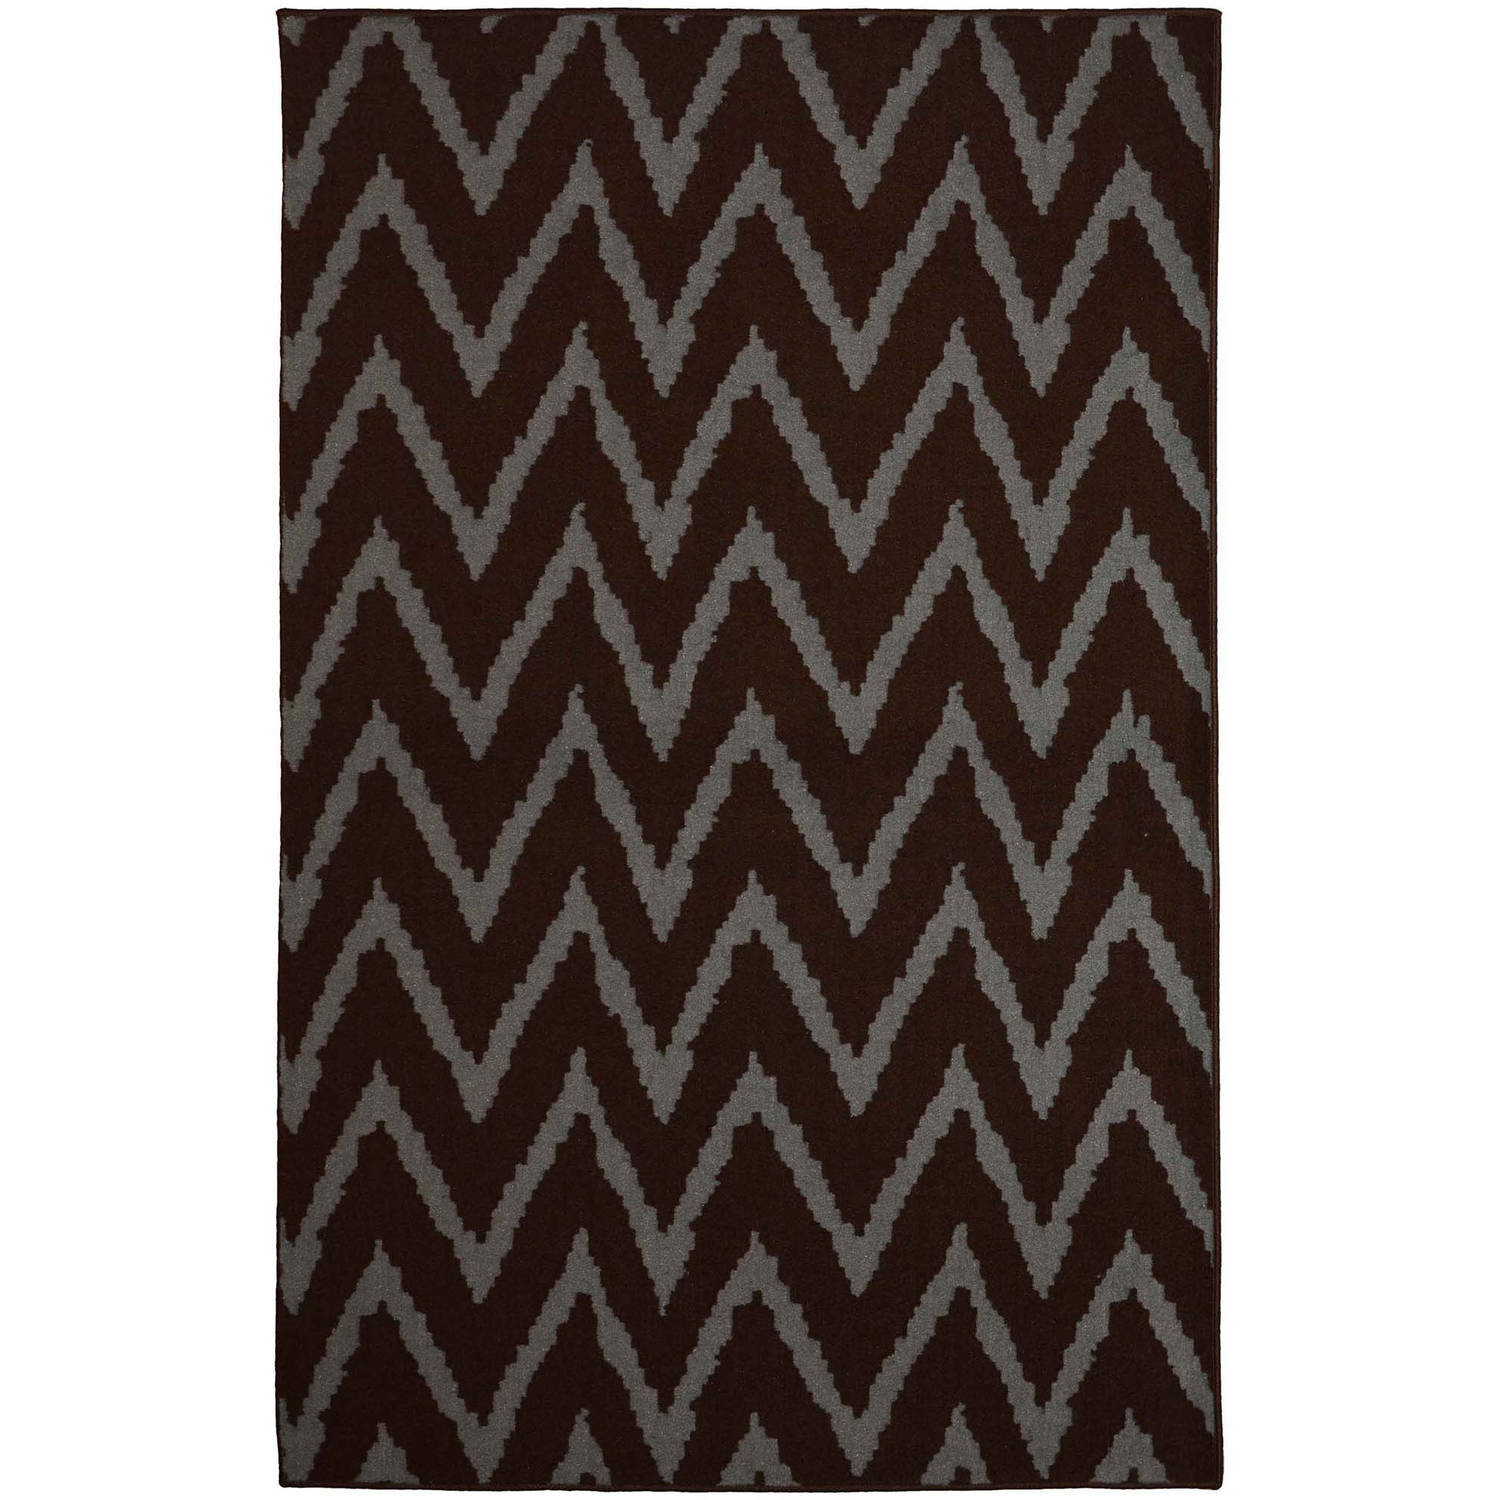 NXT-GEN Distressed Zig-Zag Olefin Area Rug